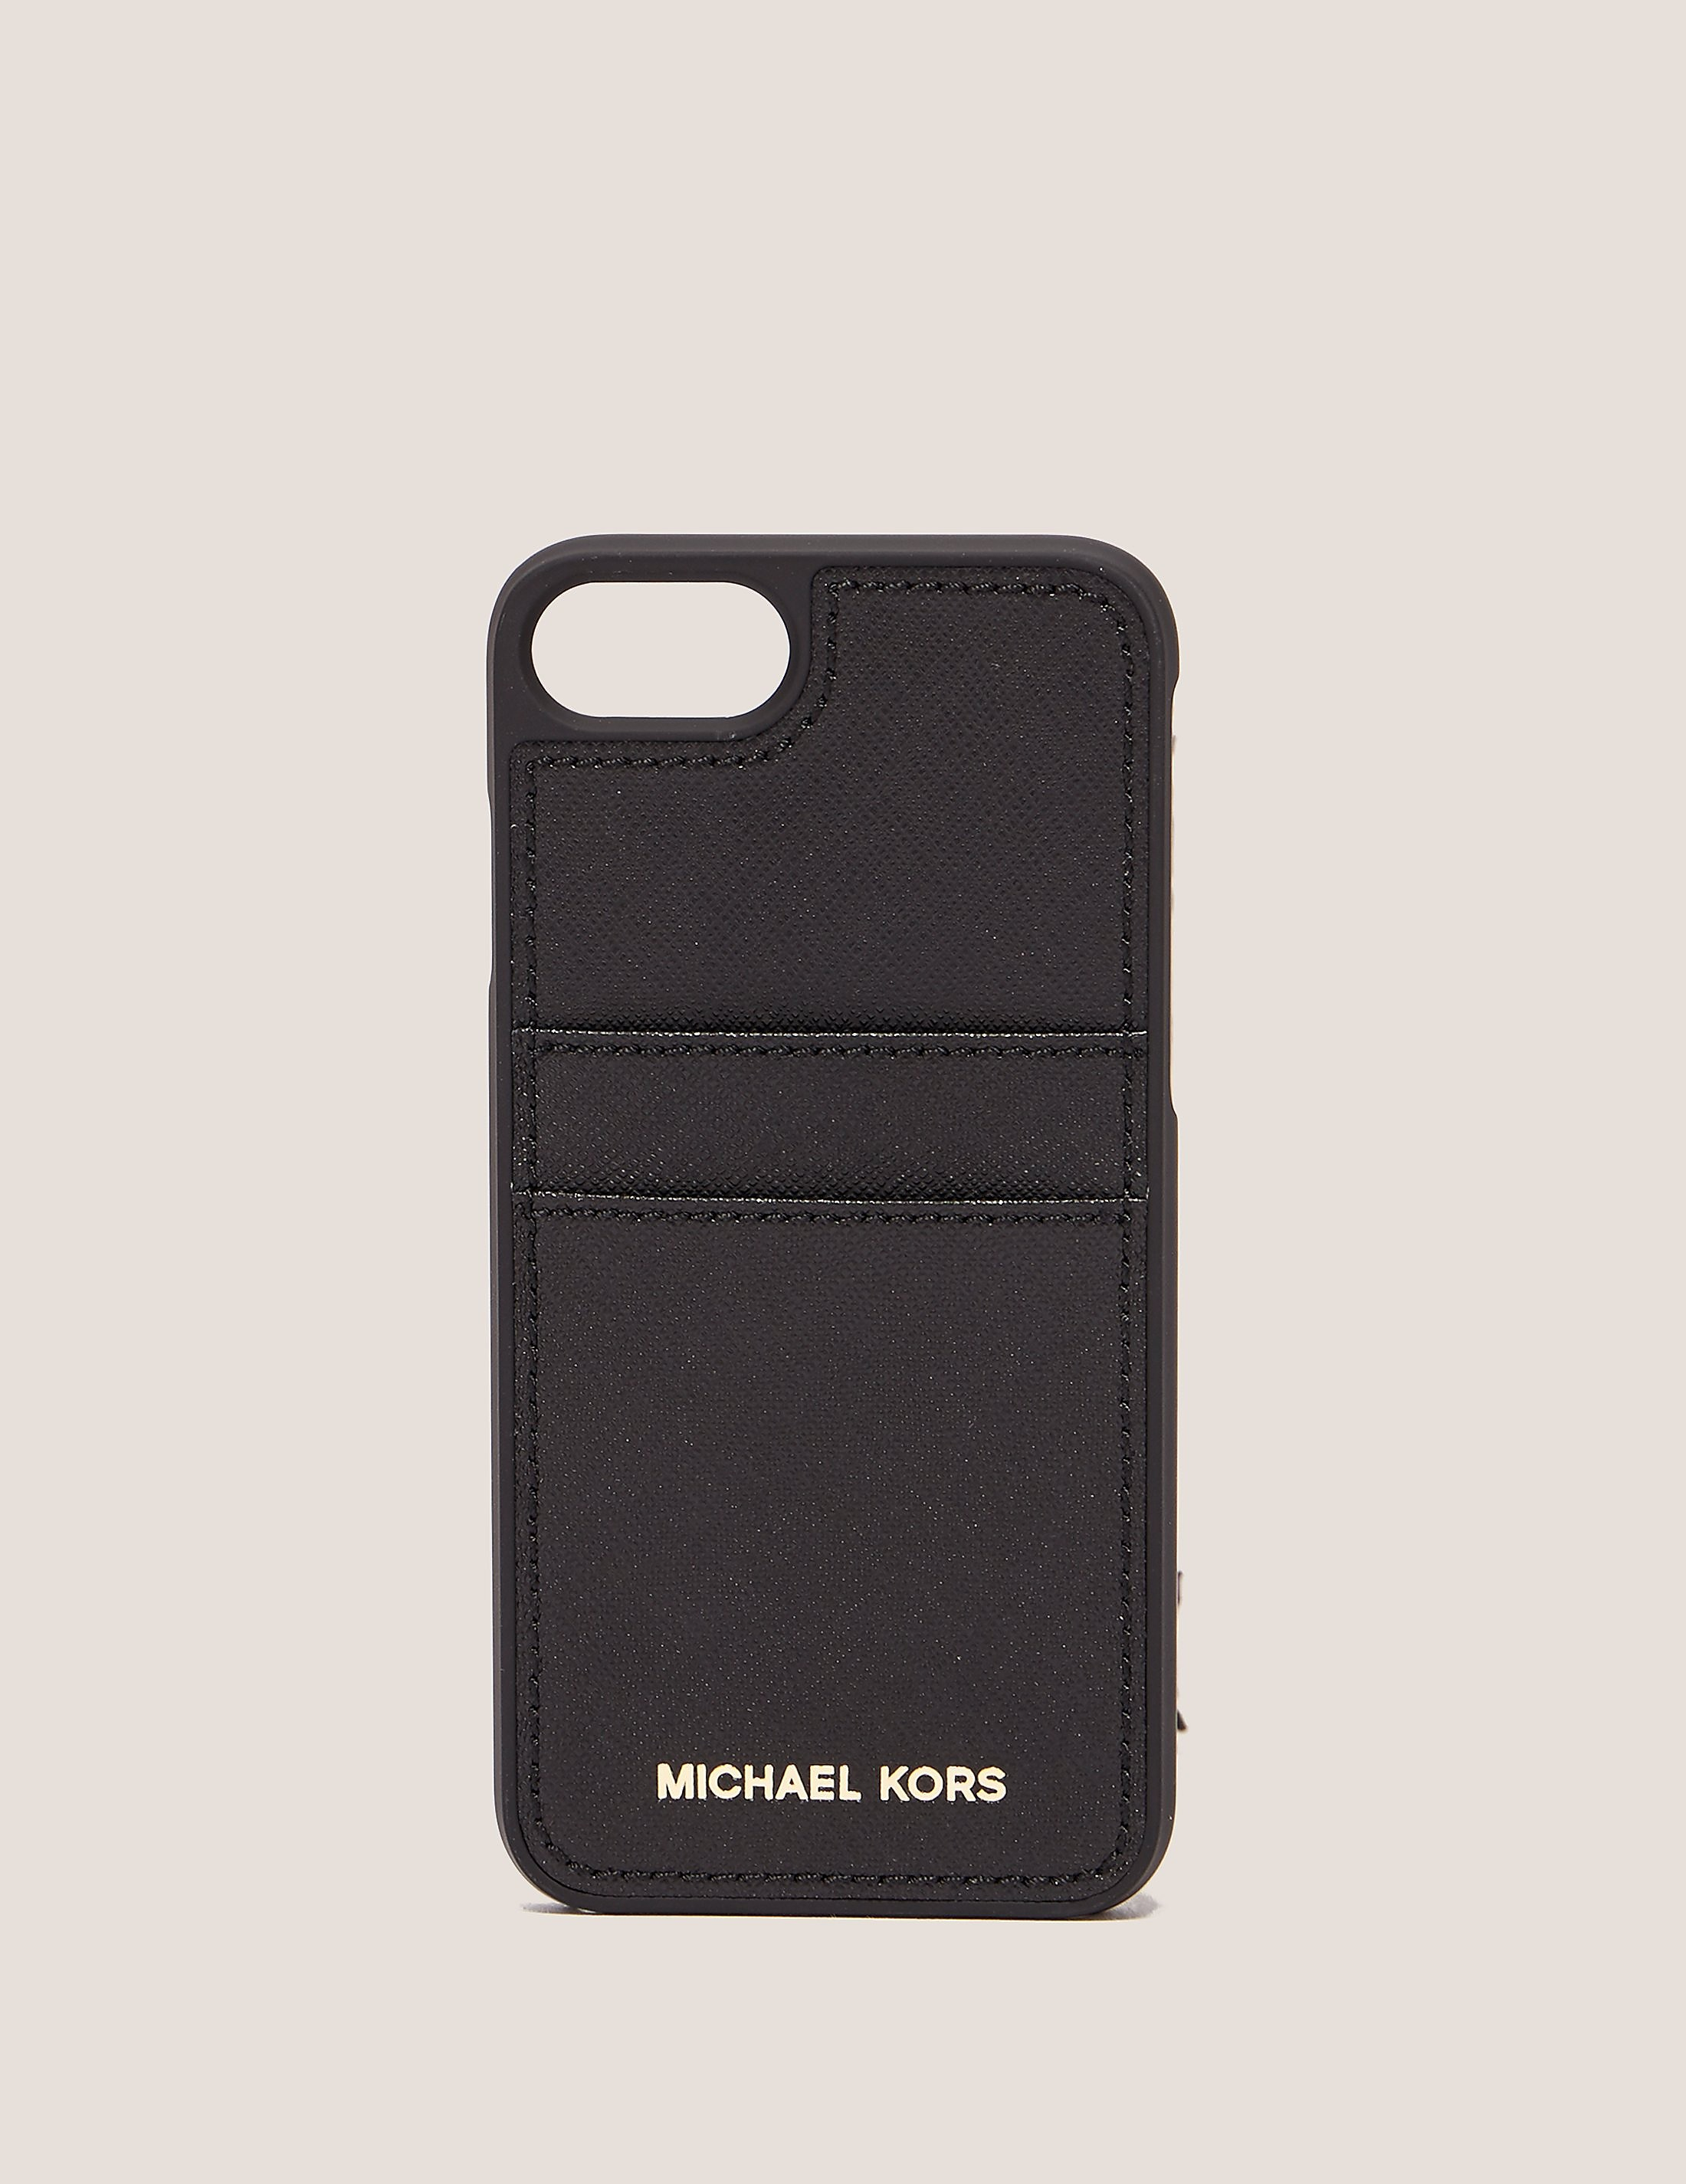 Michael Kors iPhone 7 Phone Case